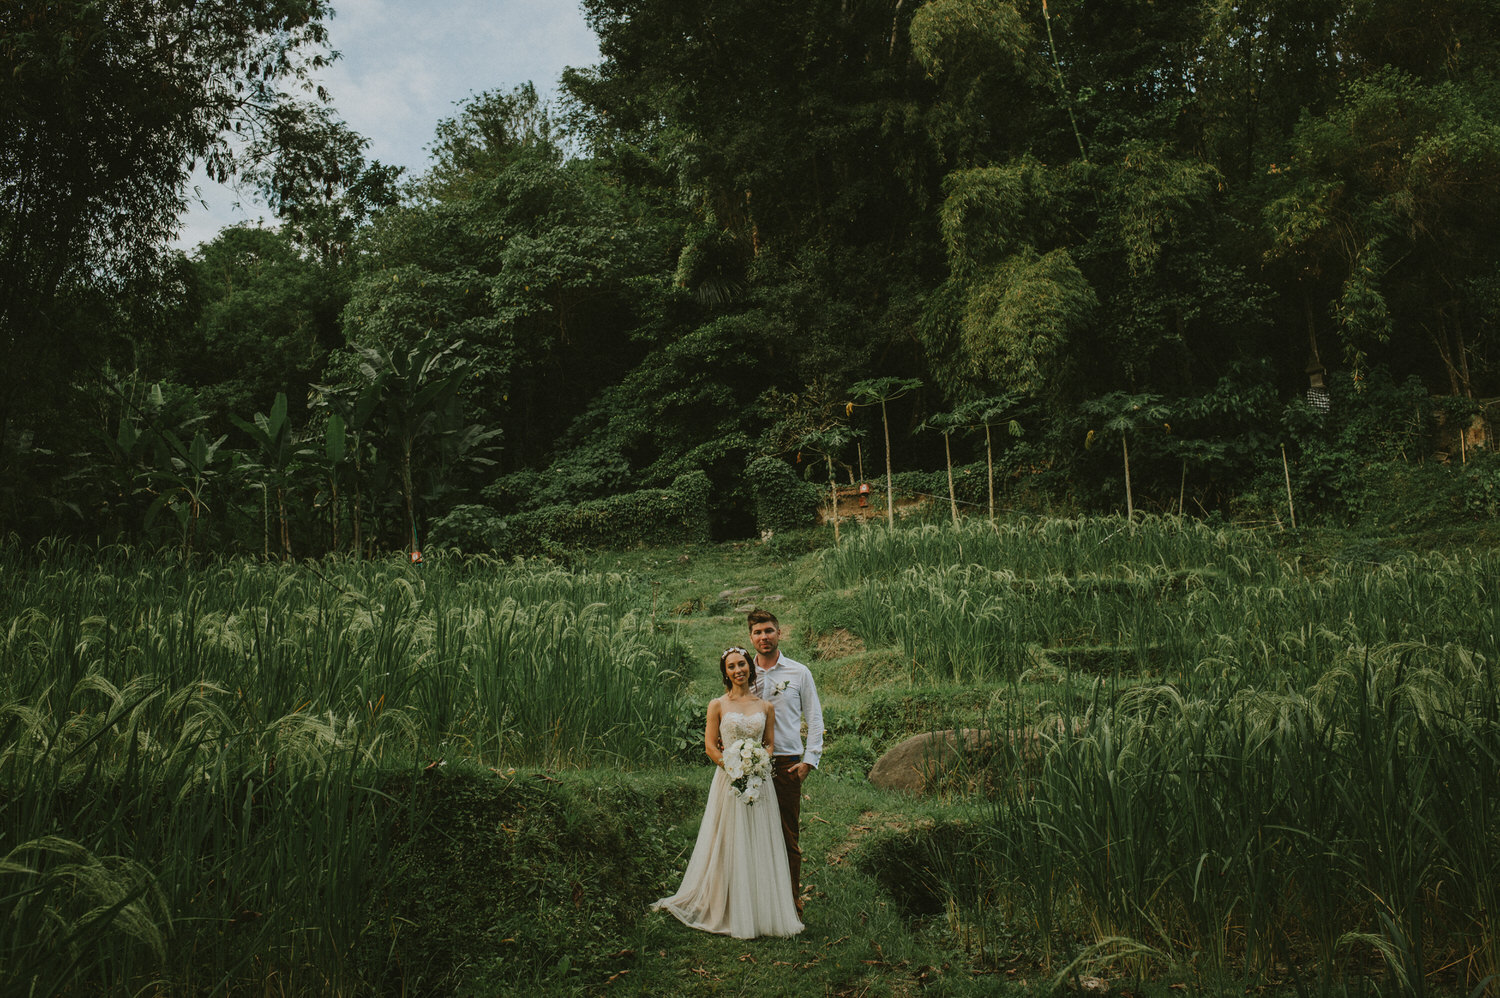 bali-wedding-ubud-wedding-wedding-destination-diktatphotography-kadek-artayasa-elaine-and-glenn-097